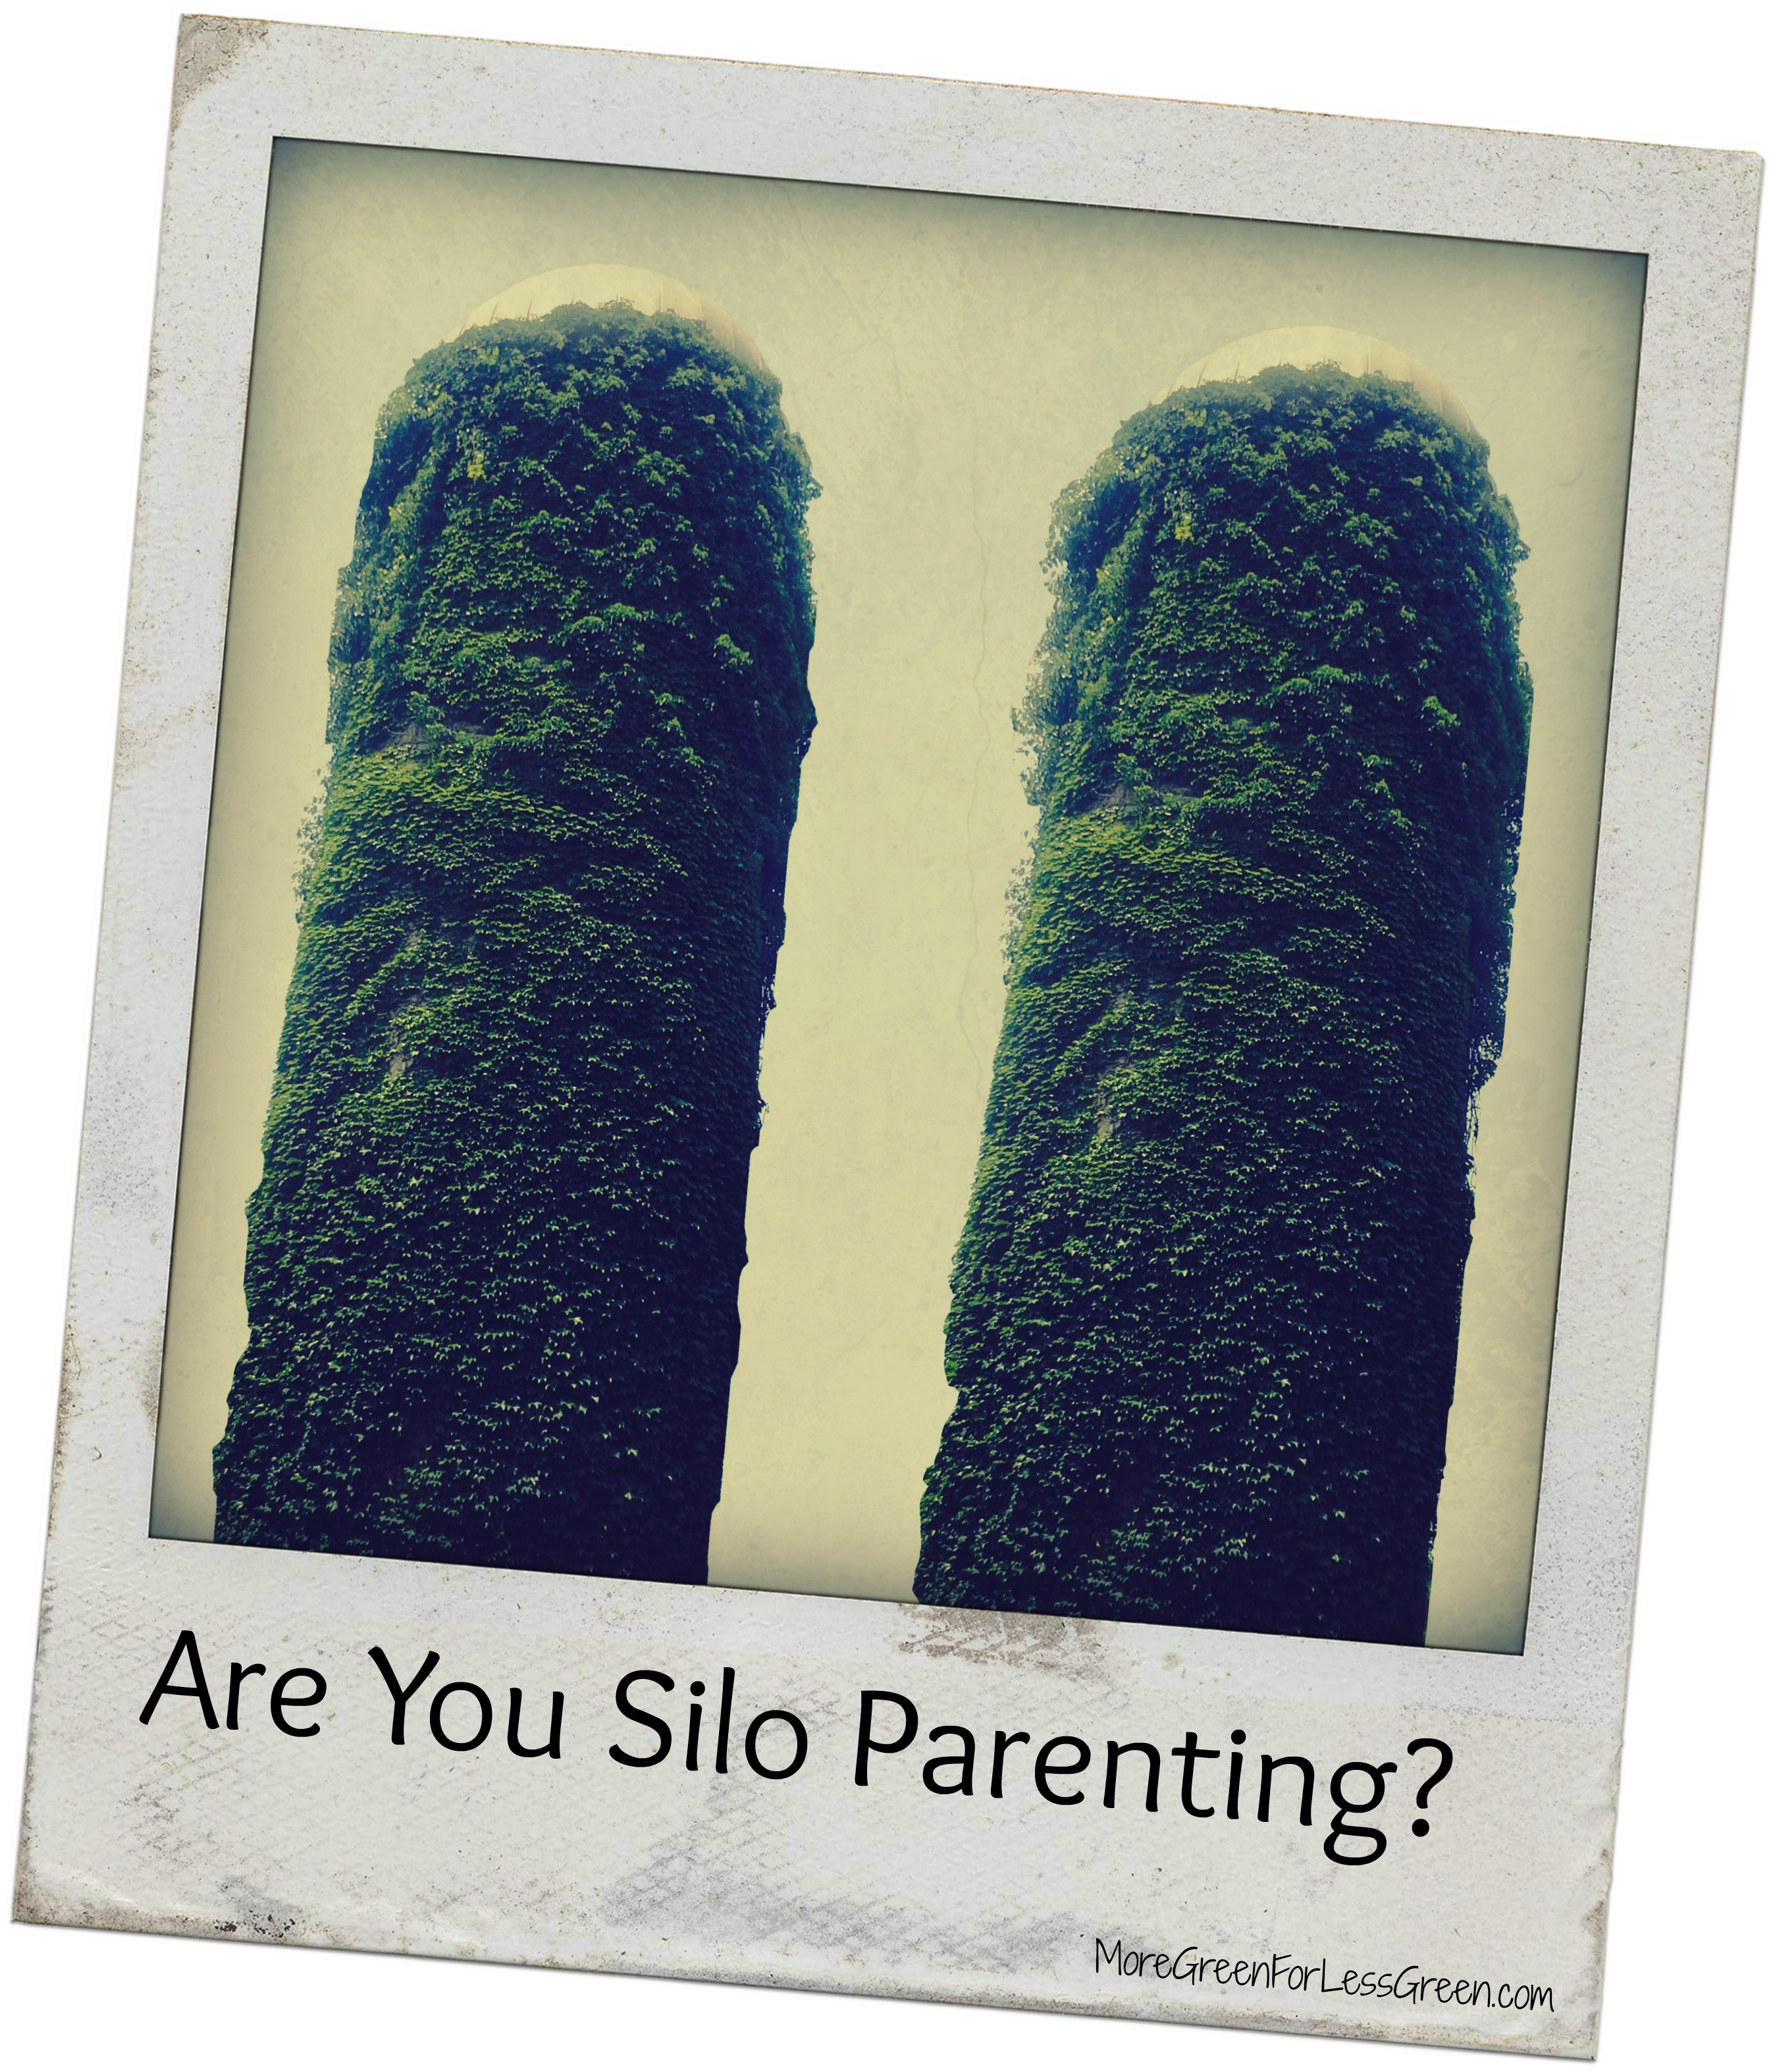 Are You Silo Parenting?